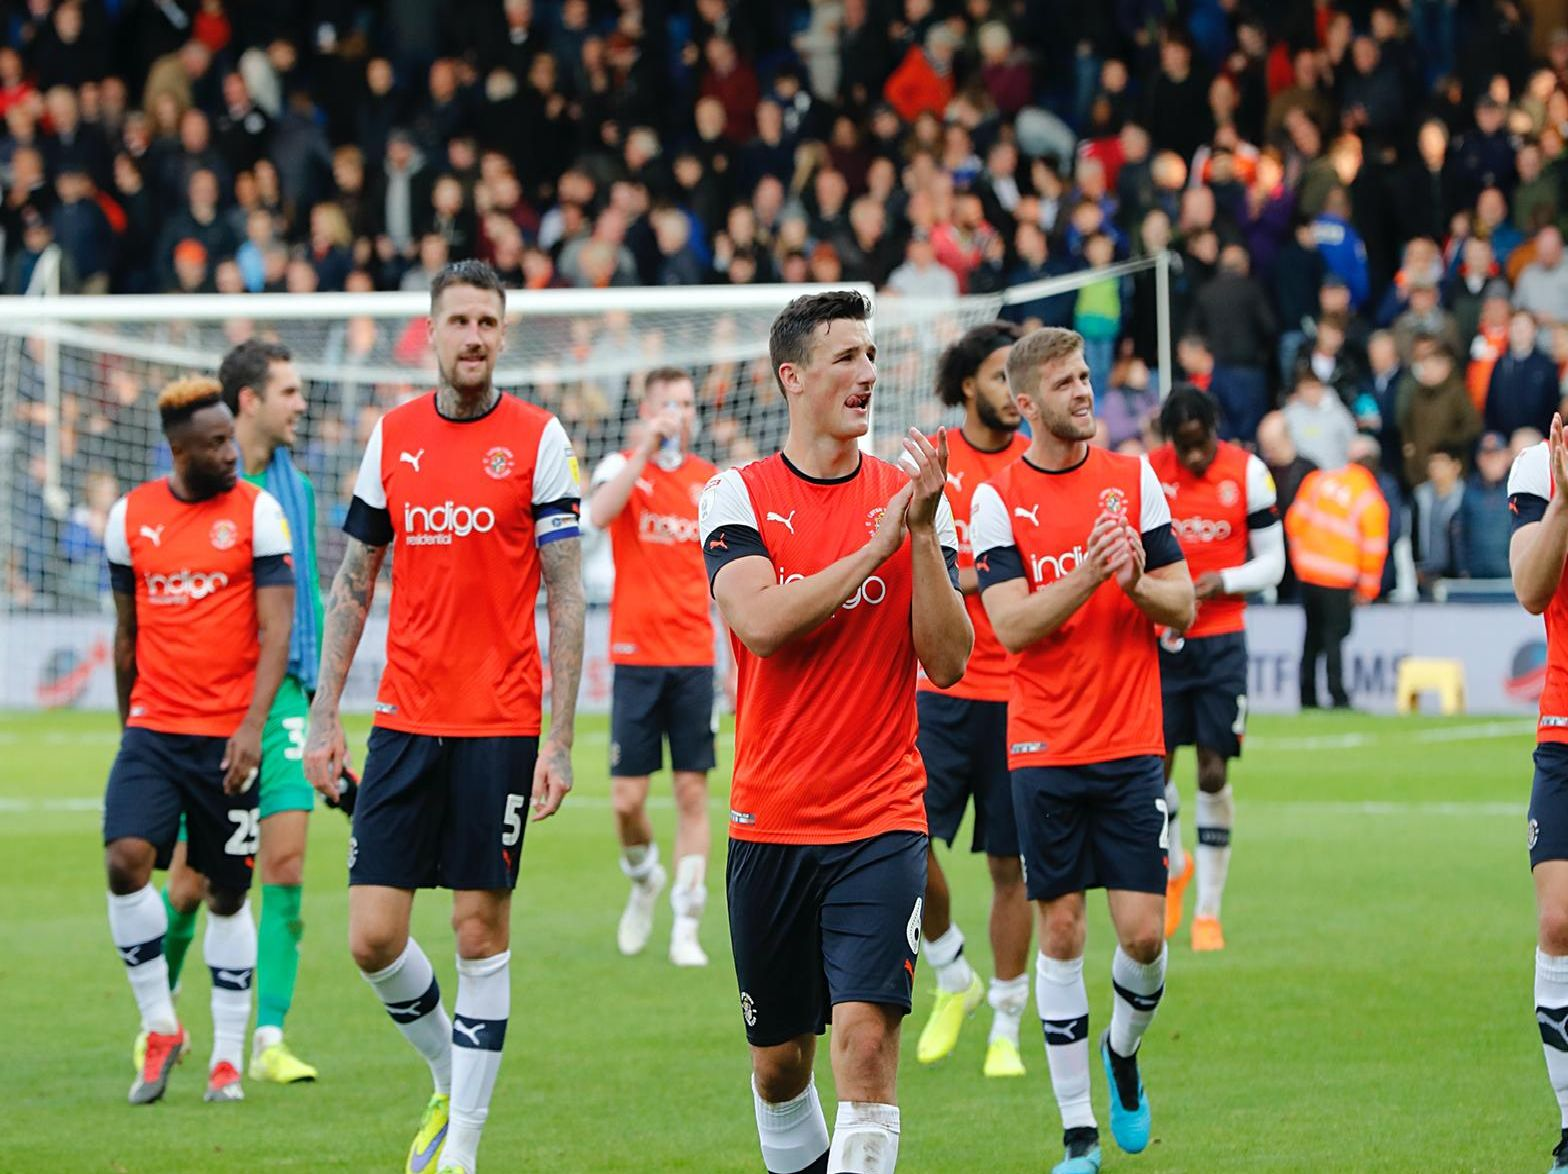 Town's players applaud the home fans after beating Bristol City 3-0 on Saturday